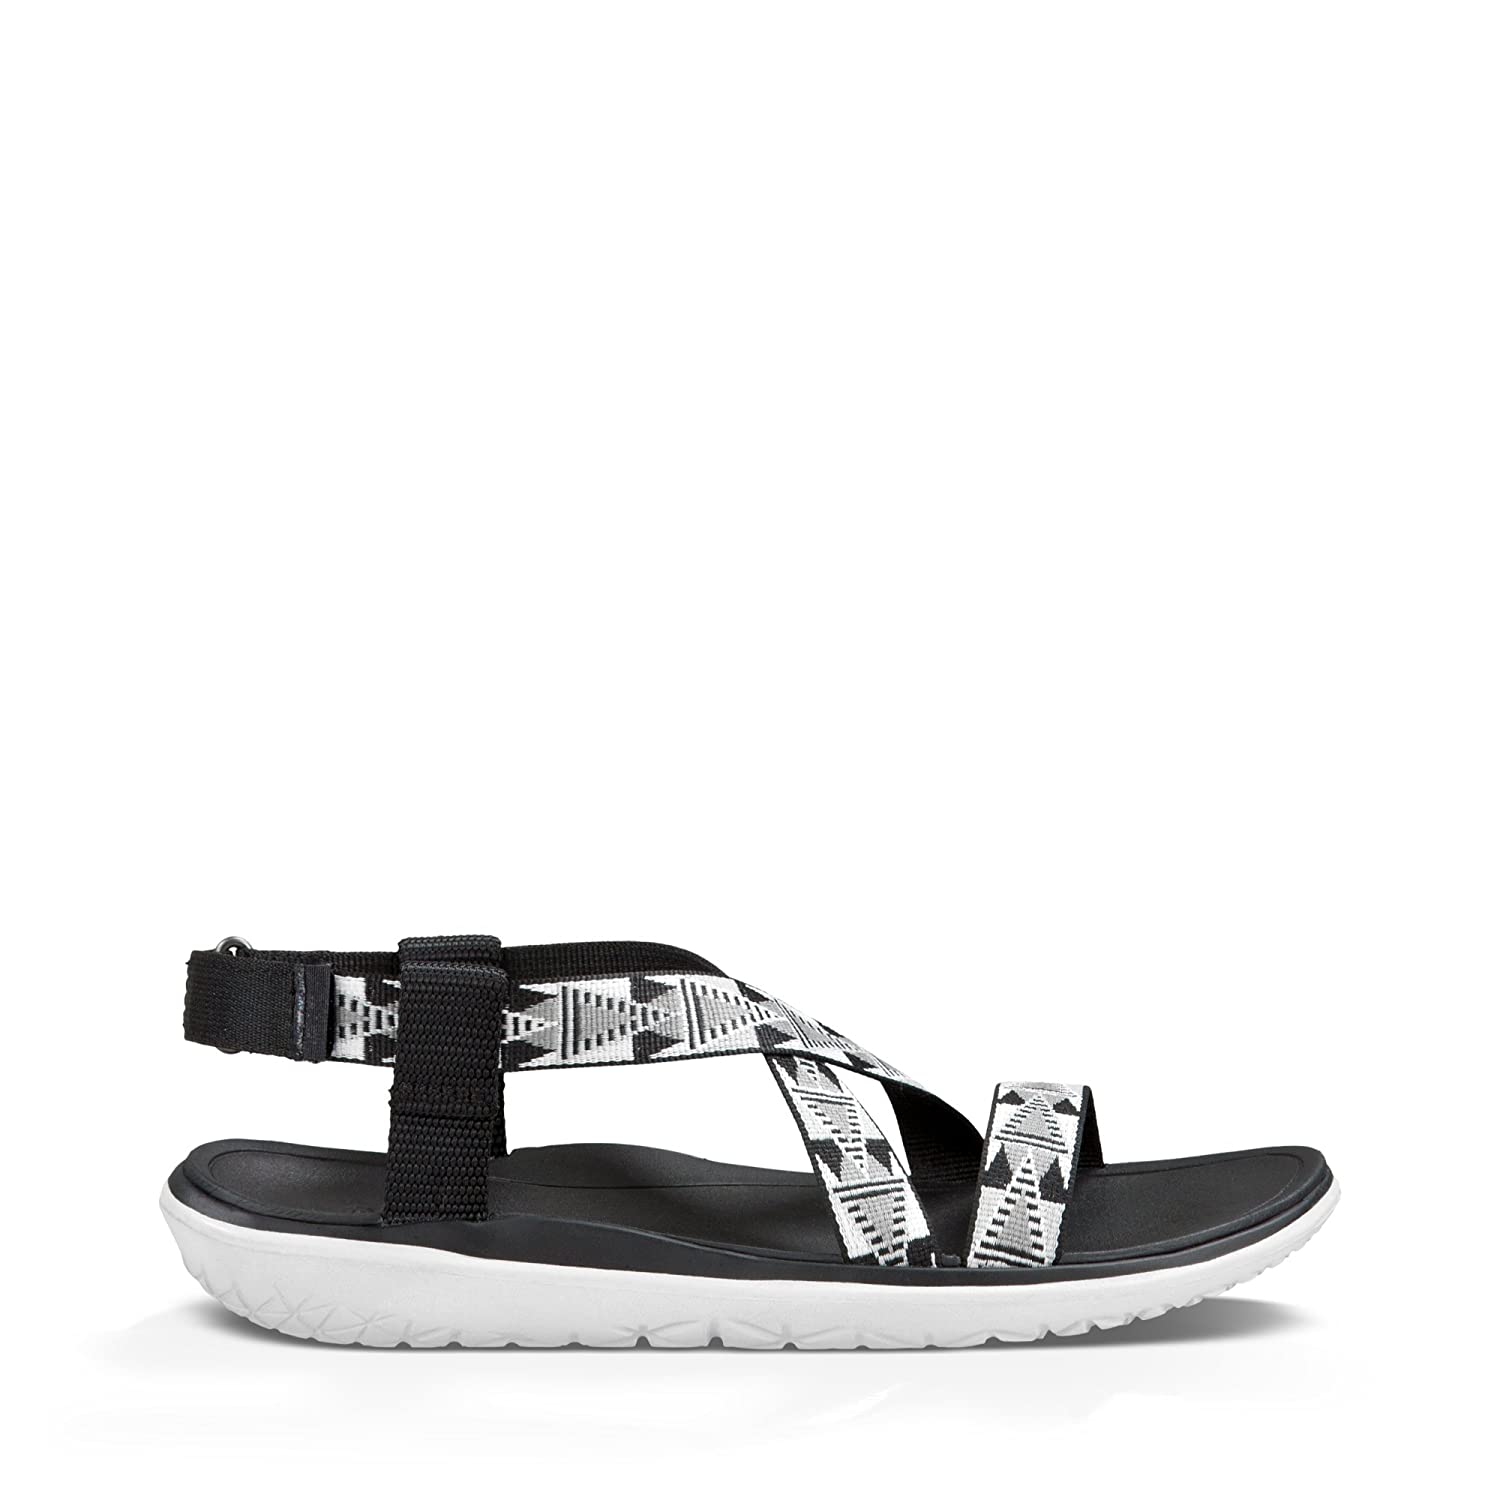 Teva Women's Terra-Float Livia Sandal B00ZFL0UG8 8.5 B(M) US|Black